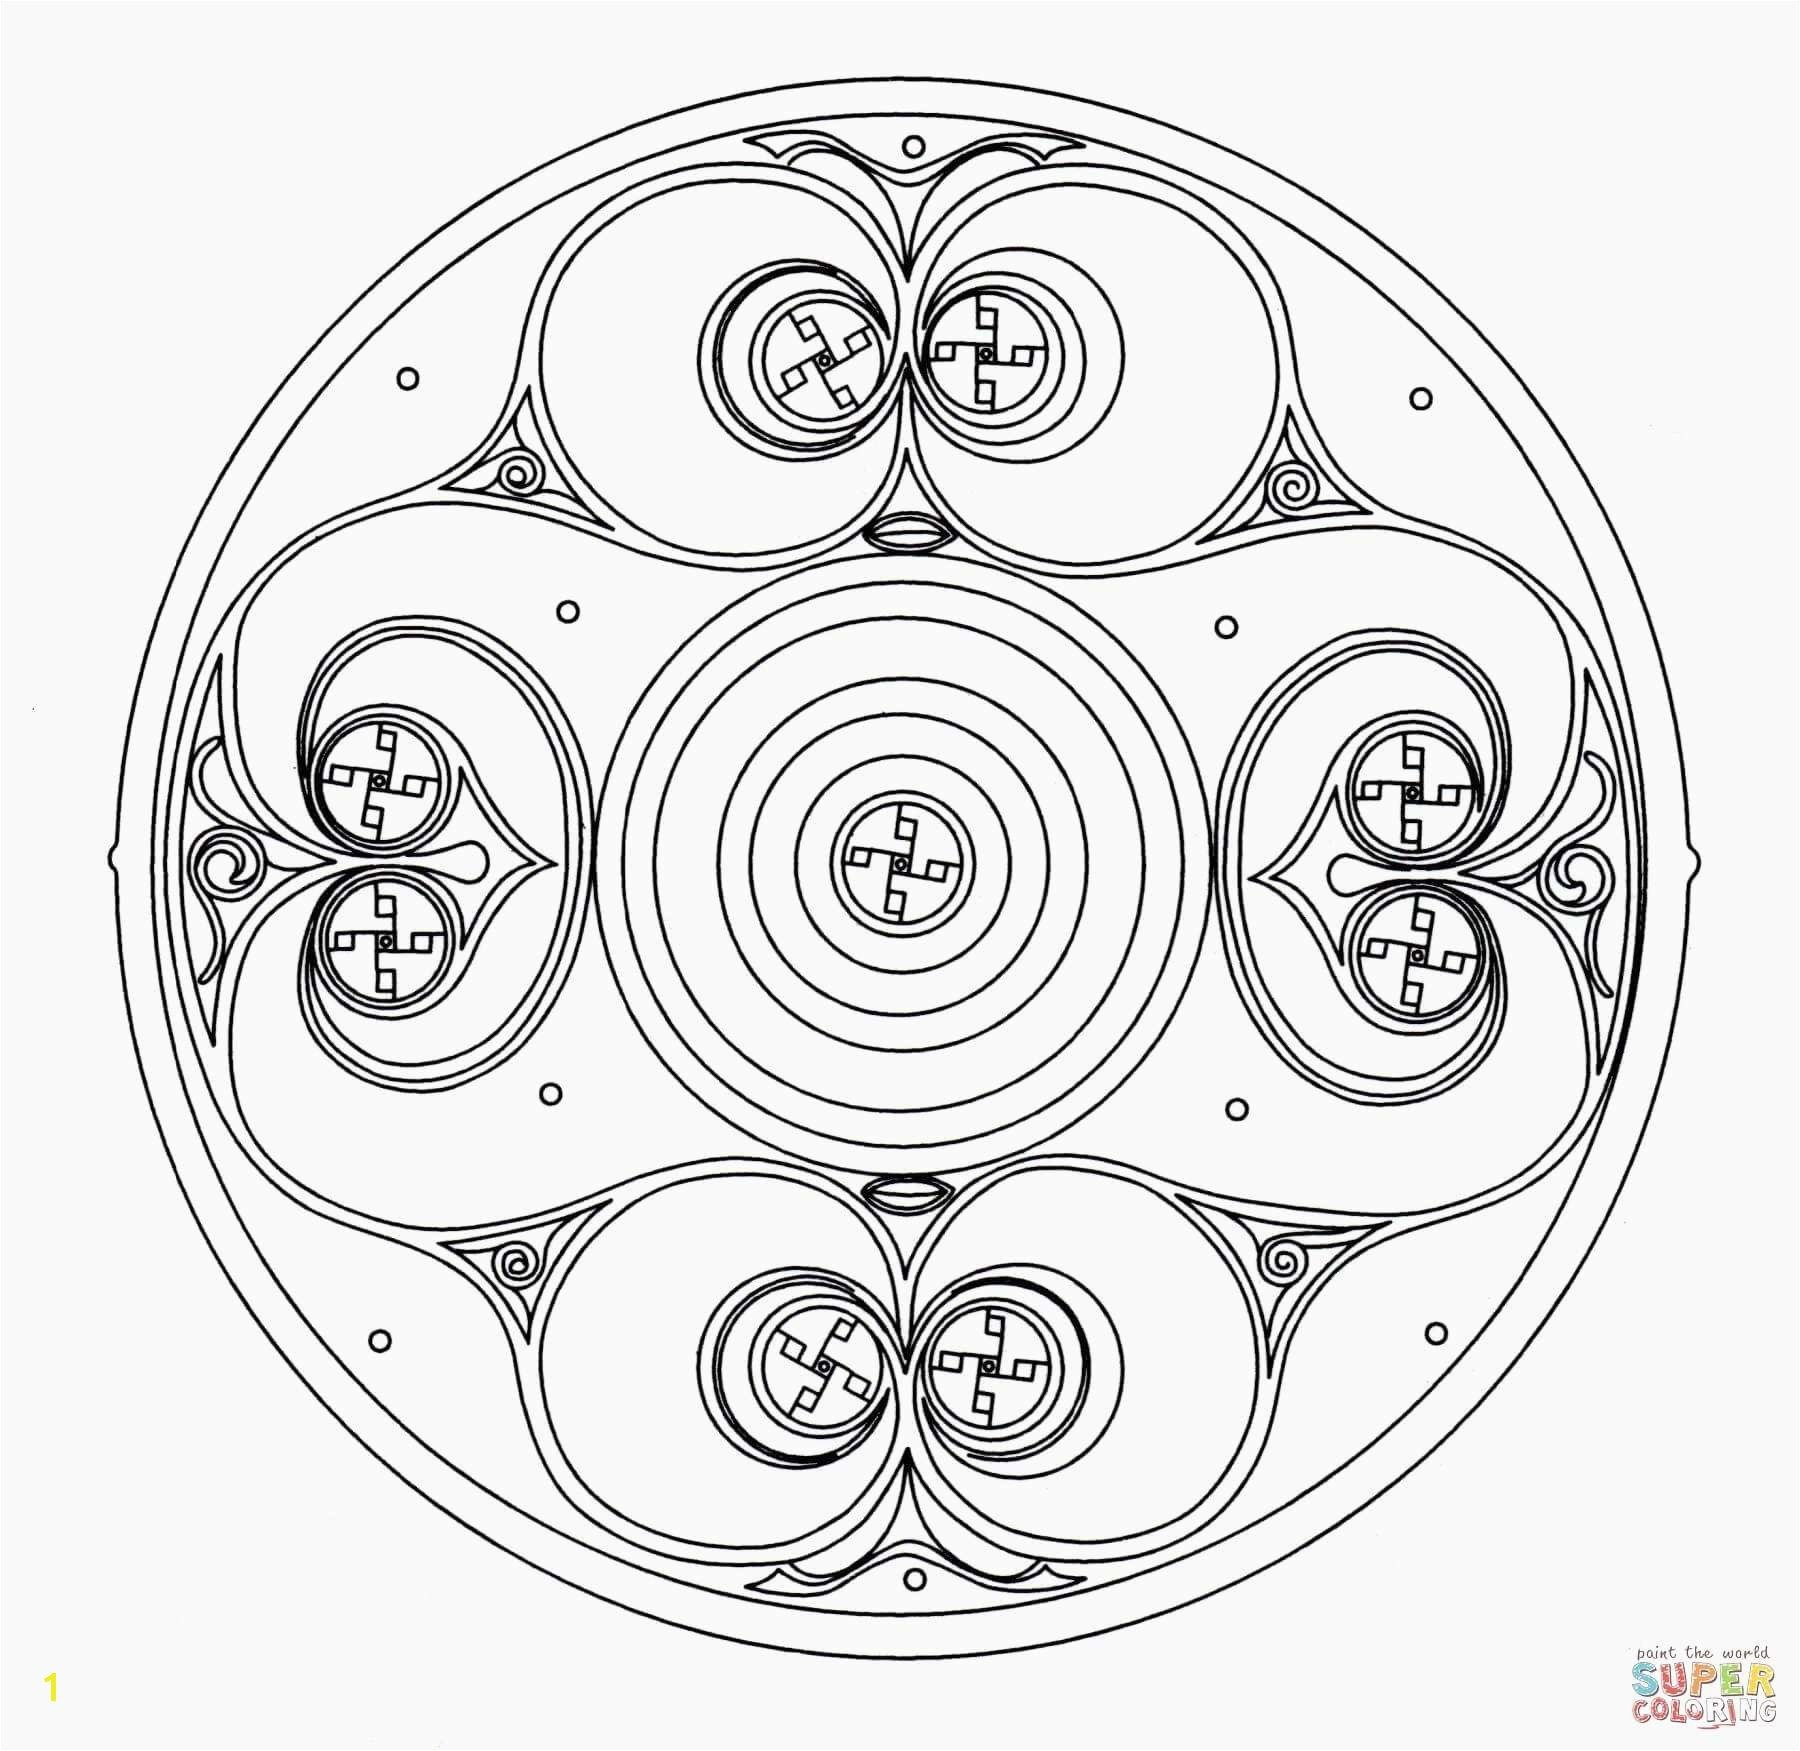 Coloring Books for Grown Ups Celtic Mandala Coloring Pages Coloring Books for Grown Ups Celtic Mandala Coloring Pages Free